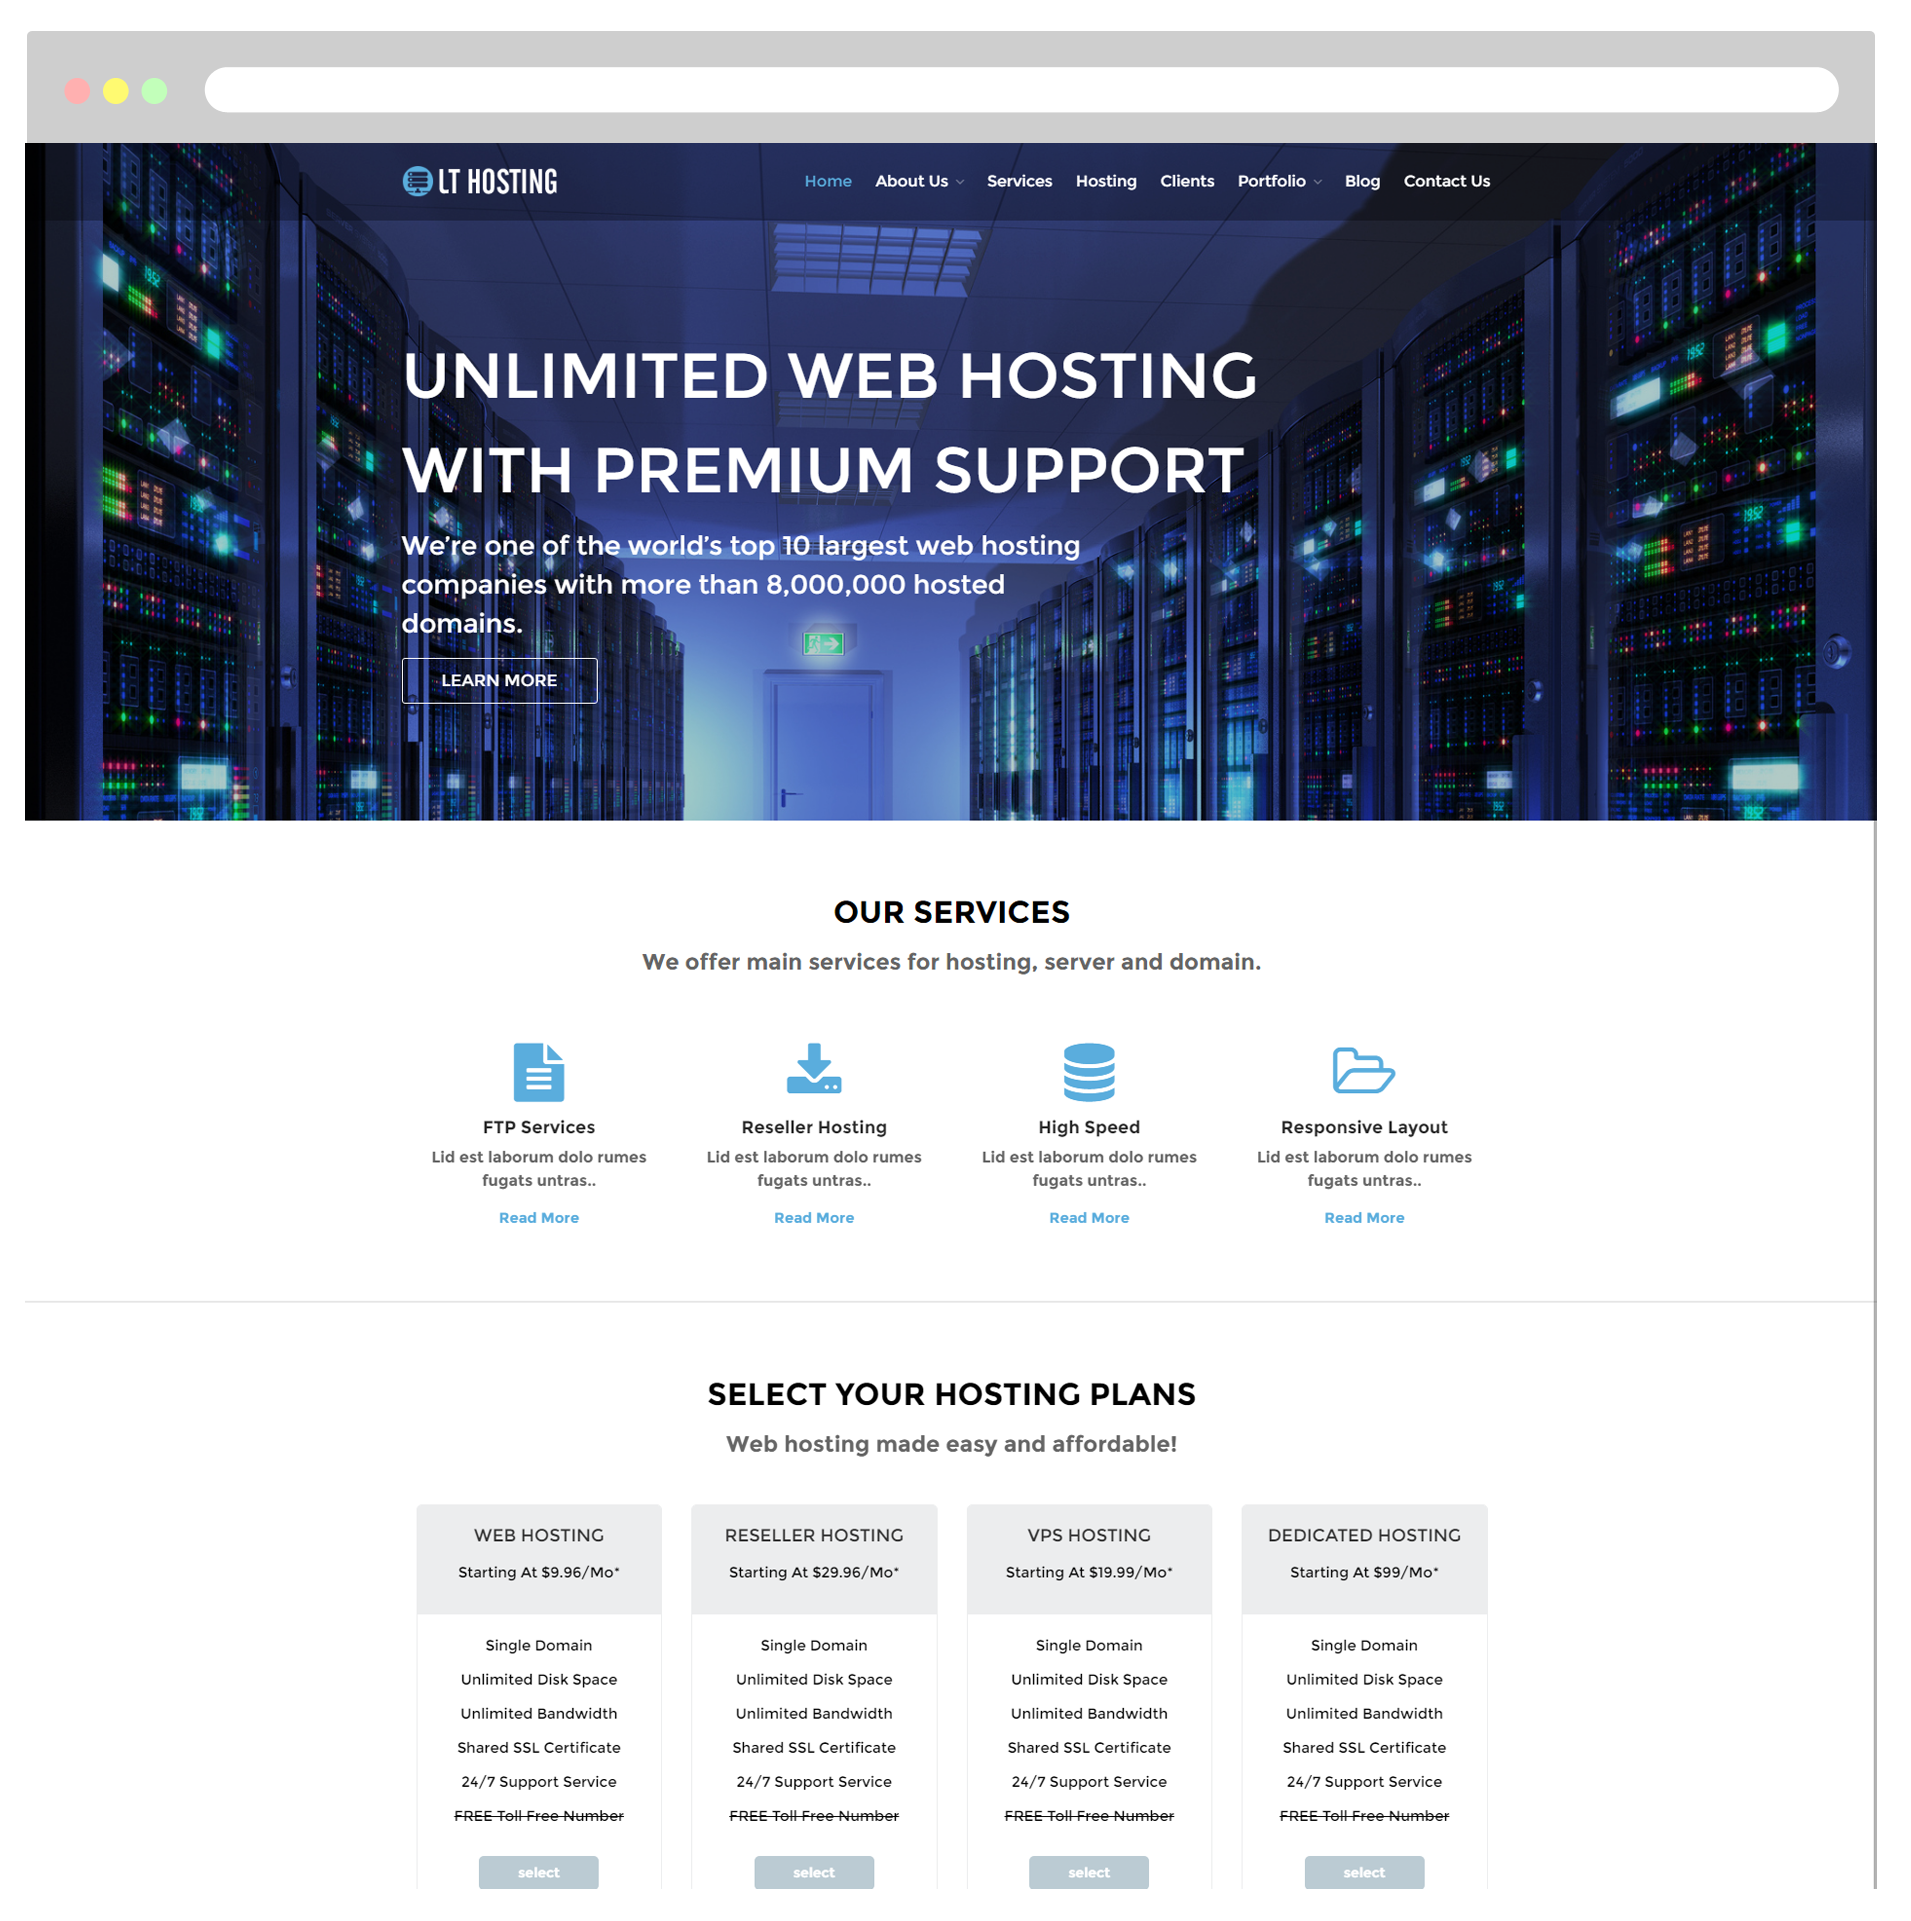 lt-hosting-HOME